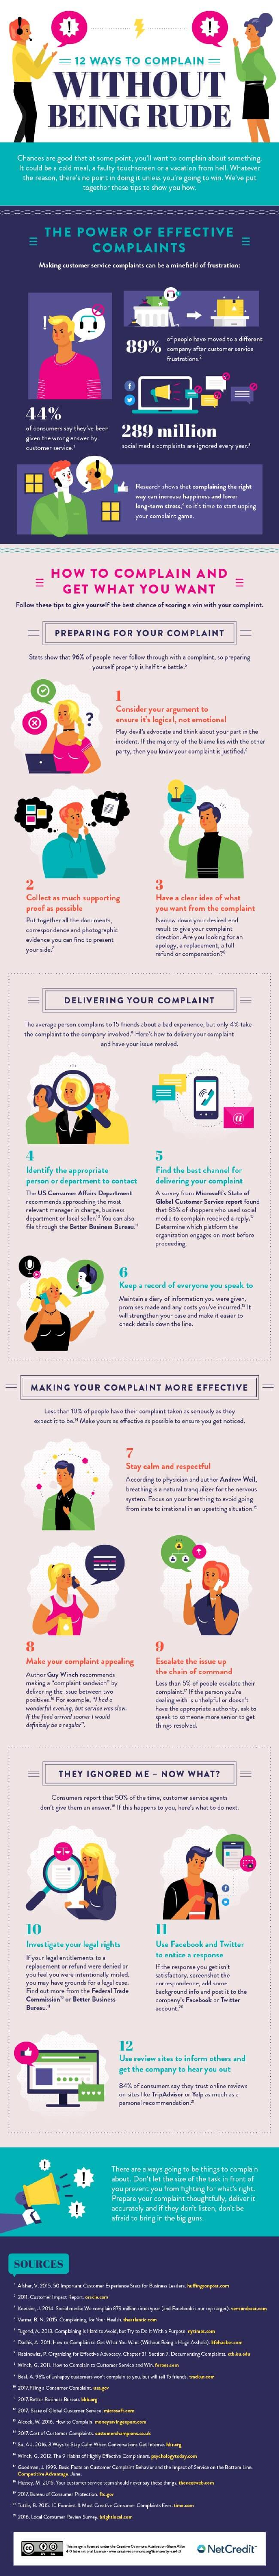 the power of effective complaints 12 ways to complain and get what you want tipsographic main